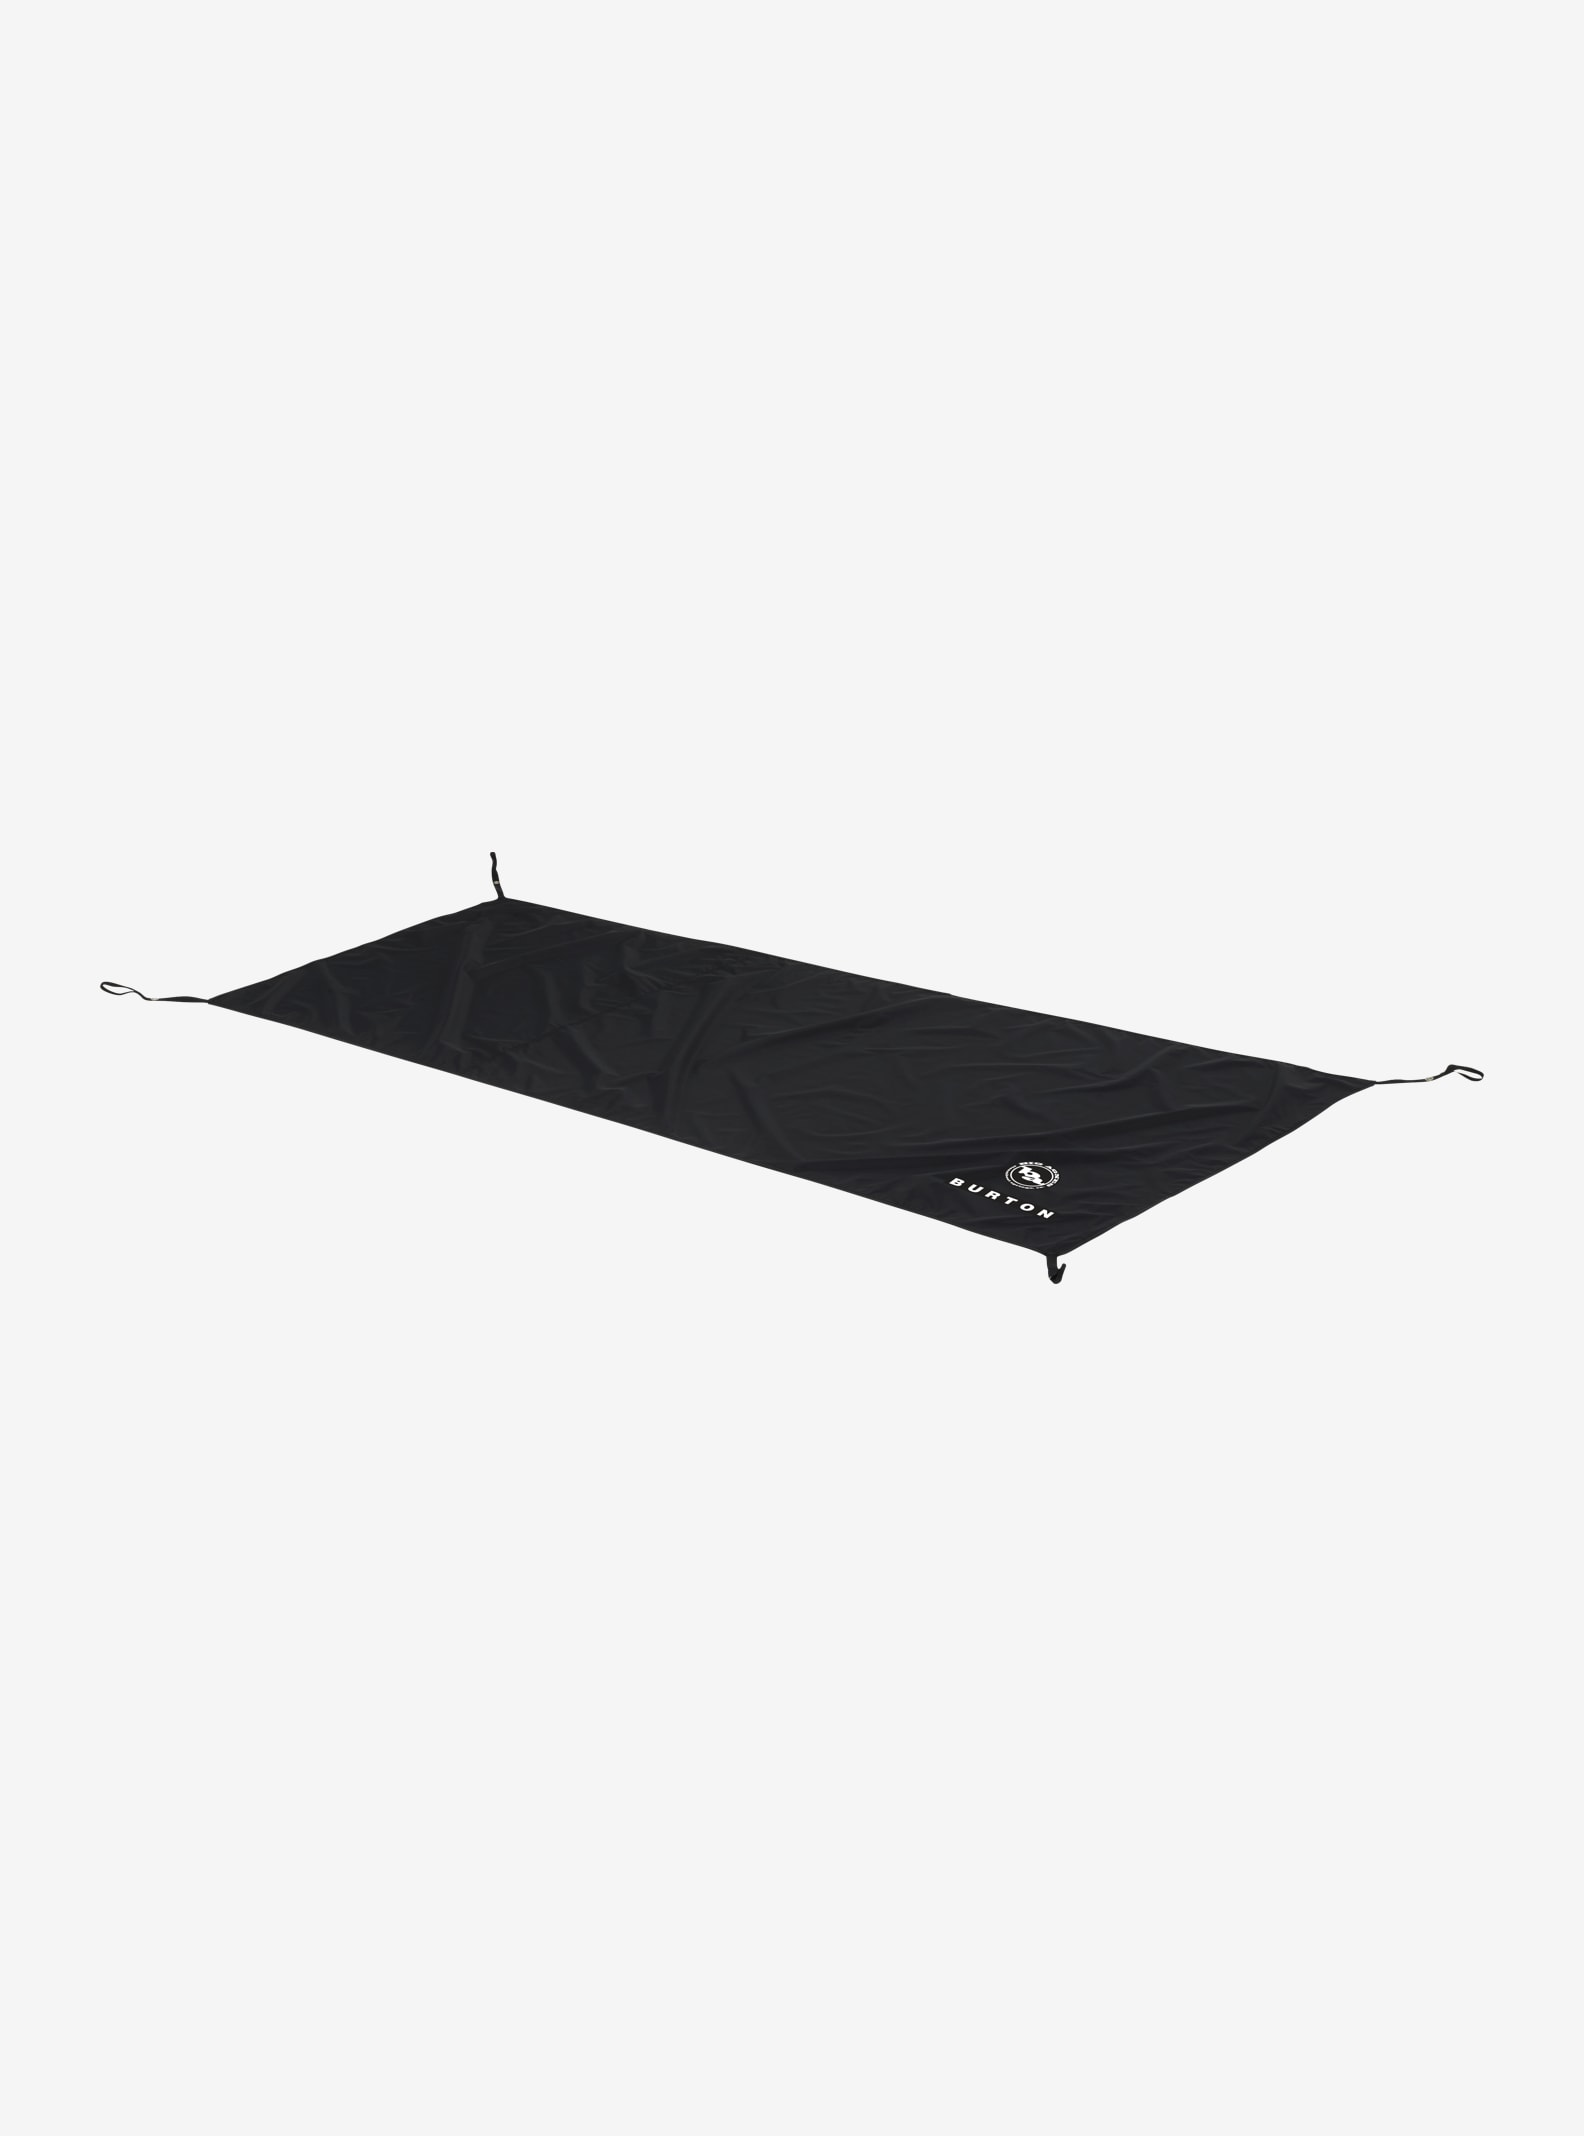 Big Agnes x Burton - Tapis de sol Blacktail 2 affichage en True Black